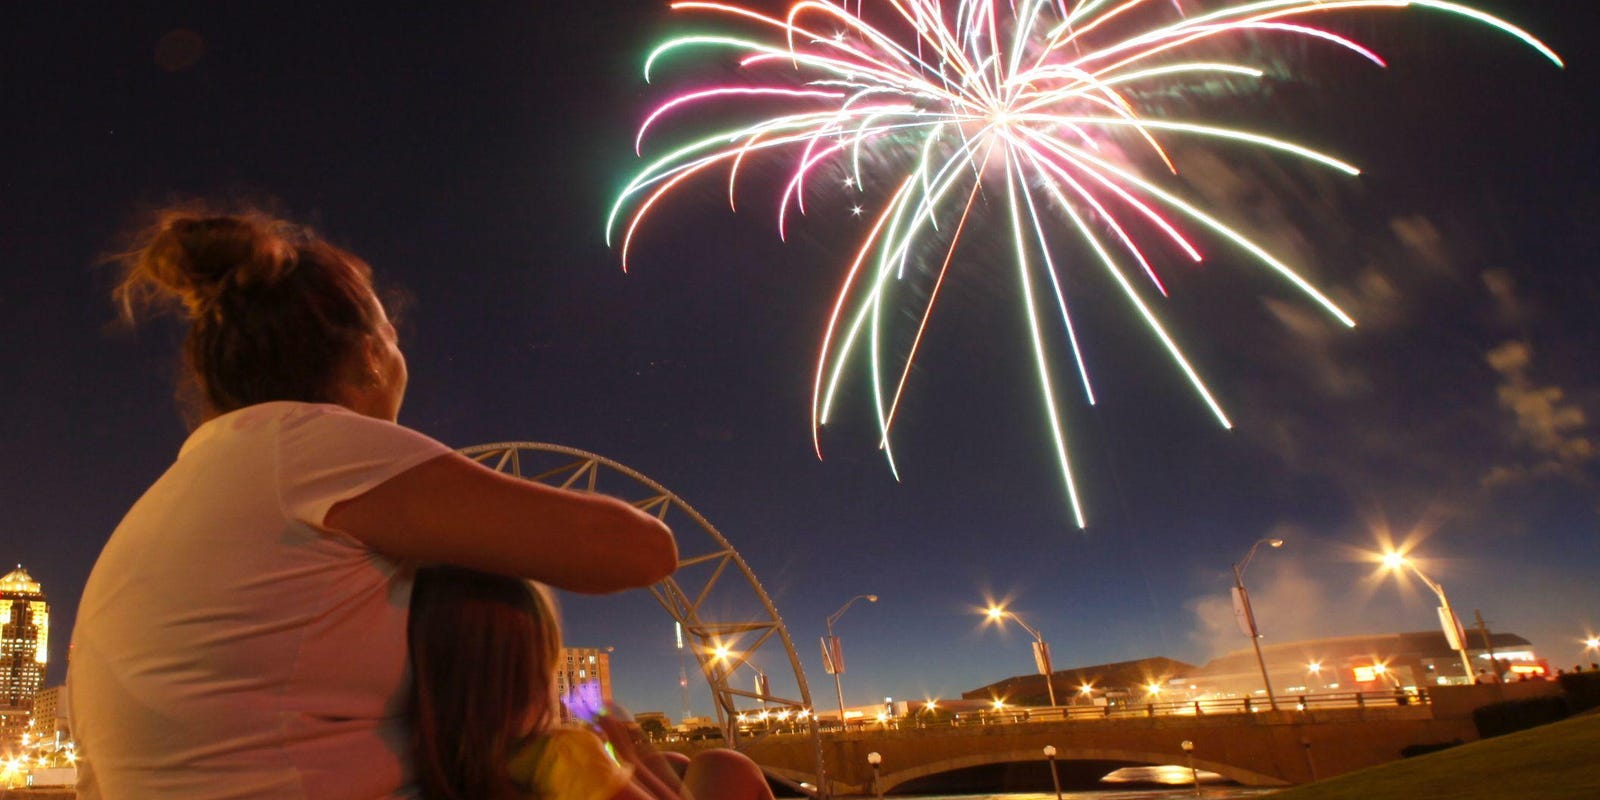 Where to find Fourth of July fireworks, parades, more in the Des Moines metro